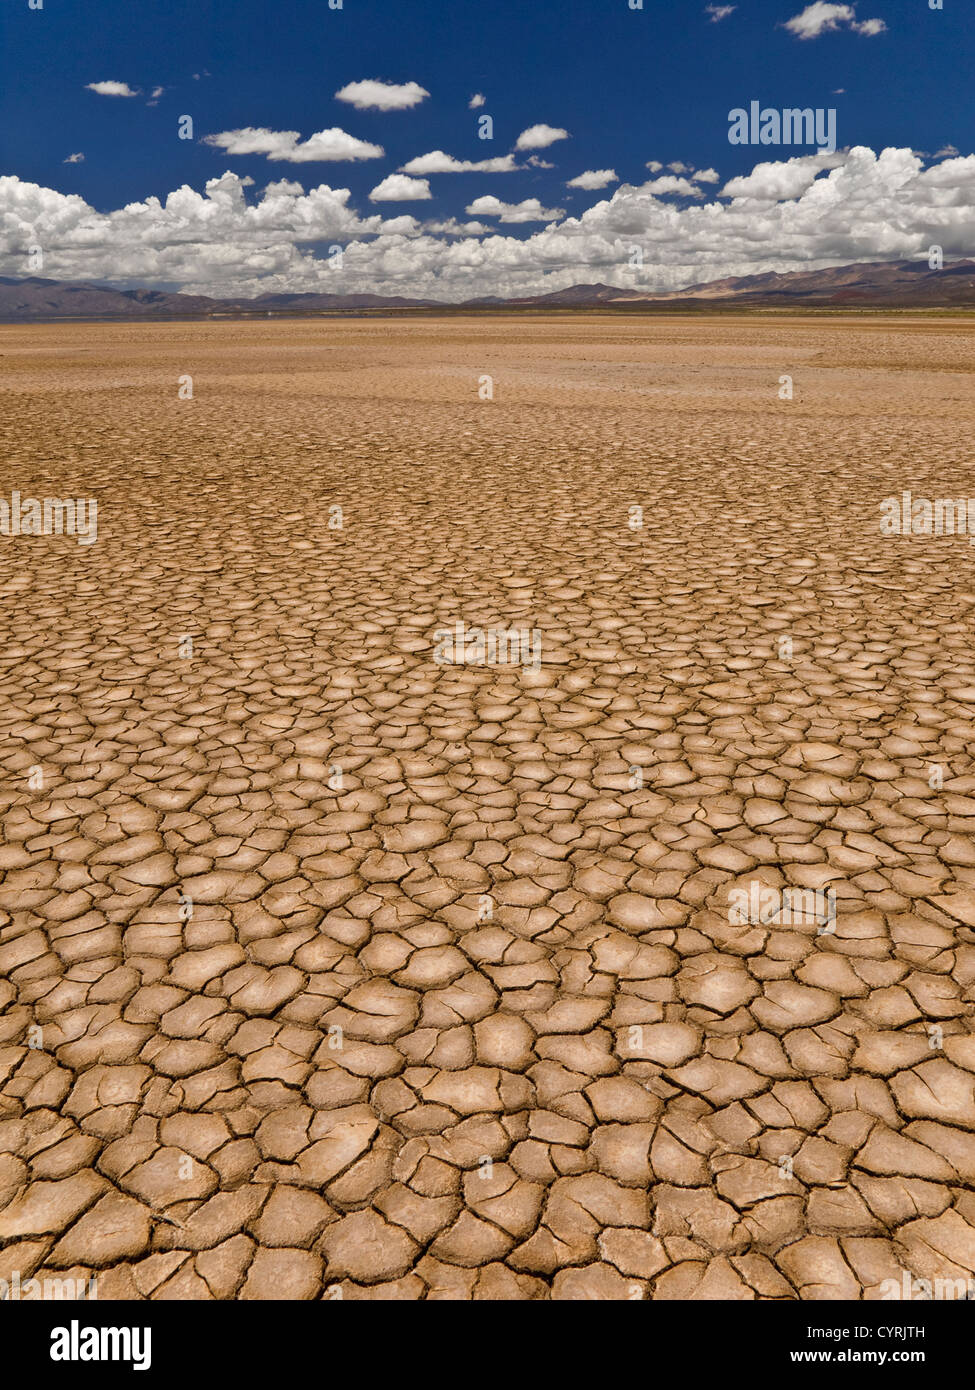 Large field of baked earth after a long drought. - Stock Image